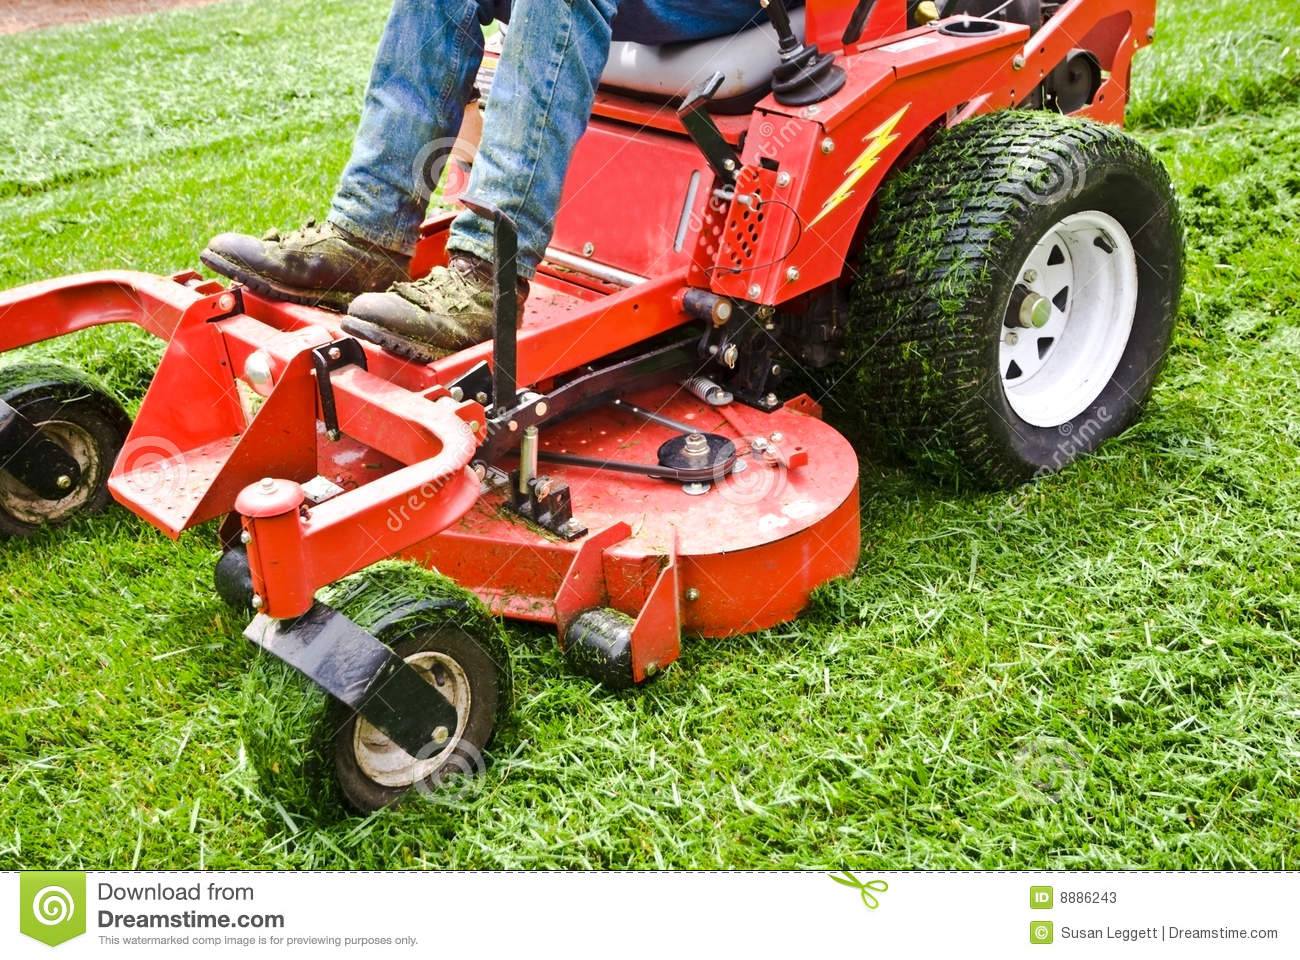 Lawn Care Equipment Clip Art Man on a riding lawn mower